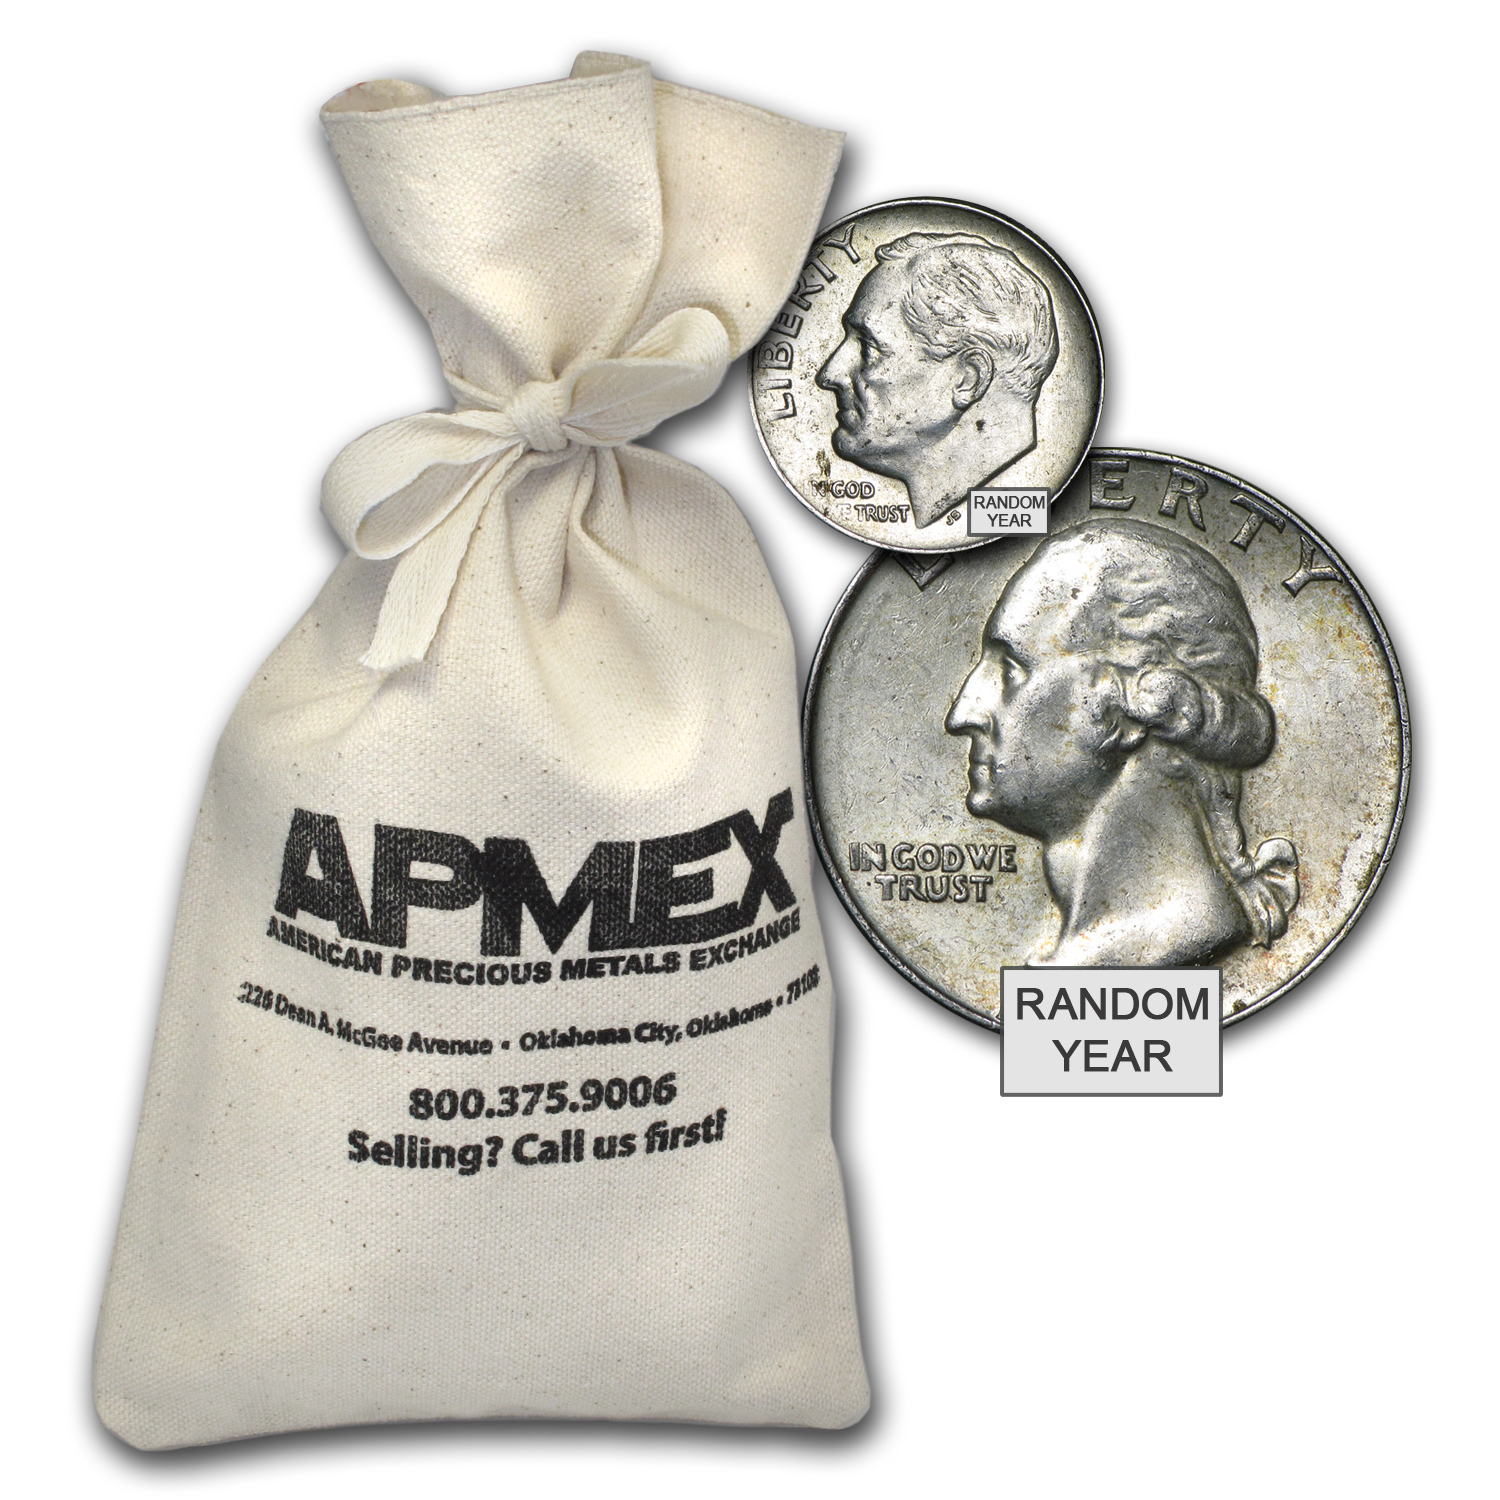 90% Silver Coins - $100 Face-Value Bag